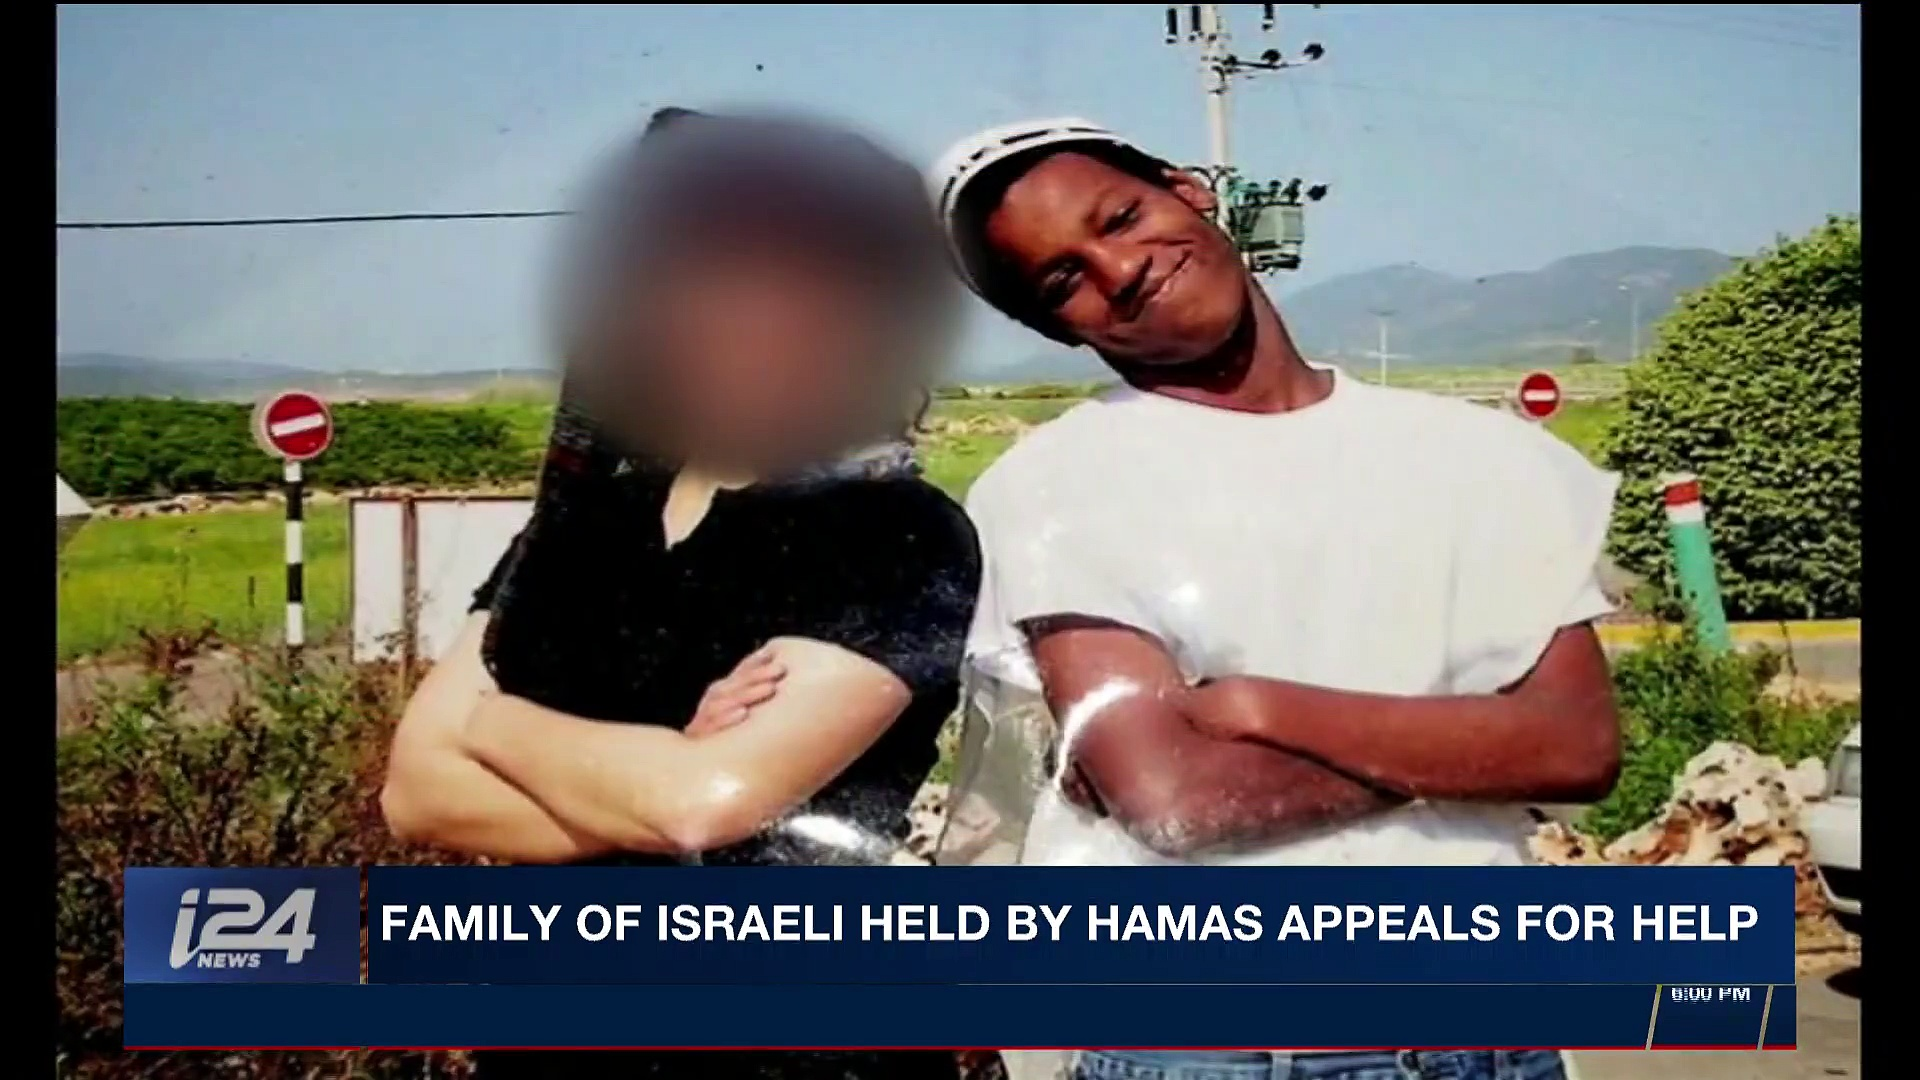 i24NEWS DESK | Family of Israeli held by Hamas appeals for help | Monday, November 20th 2017